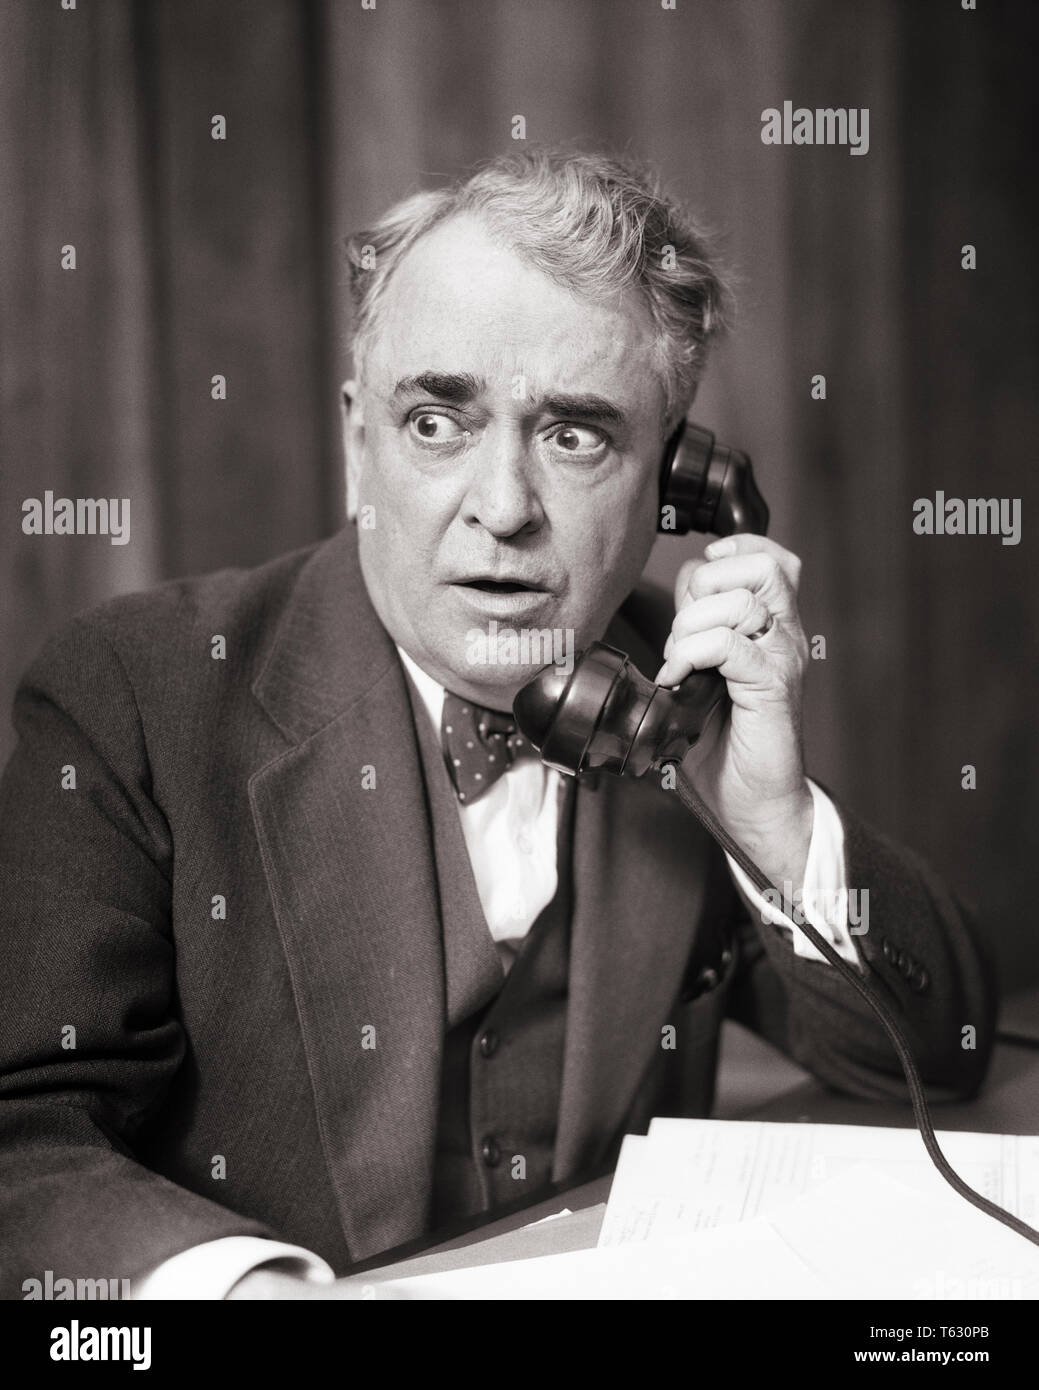 1930s BUSINESS MAN LISTENING ON TELEPHONE WITH ALARMED SHOCKED WORRIED FACIAL EXPRESSION - t3549 HAR001 HARS NOSTALGIA OLD FASHION 1 FACIAL ANGER COMMUNICATION SHOCK SHOCKED TROUBLE PROBLEM LIFESTYLE ELDER JOBS MANAGER COPY SPACE HALF-LENGTH PERSONS THOUGHTFUL MALES RISK SENIOR MAN EXECUTIVES SENIOR ADULT B&W SADNESS OCCUPATION SELLING OLDSTERS OLDSTER POLITICIAN STUNNED CONCERN OCCUPATIONS PHONES POLITICS ELDERS BOSSES TELEPHONES ATTORNEY FOCUSED INTENSE MANAGERS SALESMEN BLACK AND WHITE CAUCASIAN ETHNICITY HAR001 INTENT OLD FASHIONED - Stock Image